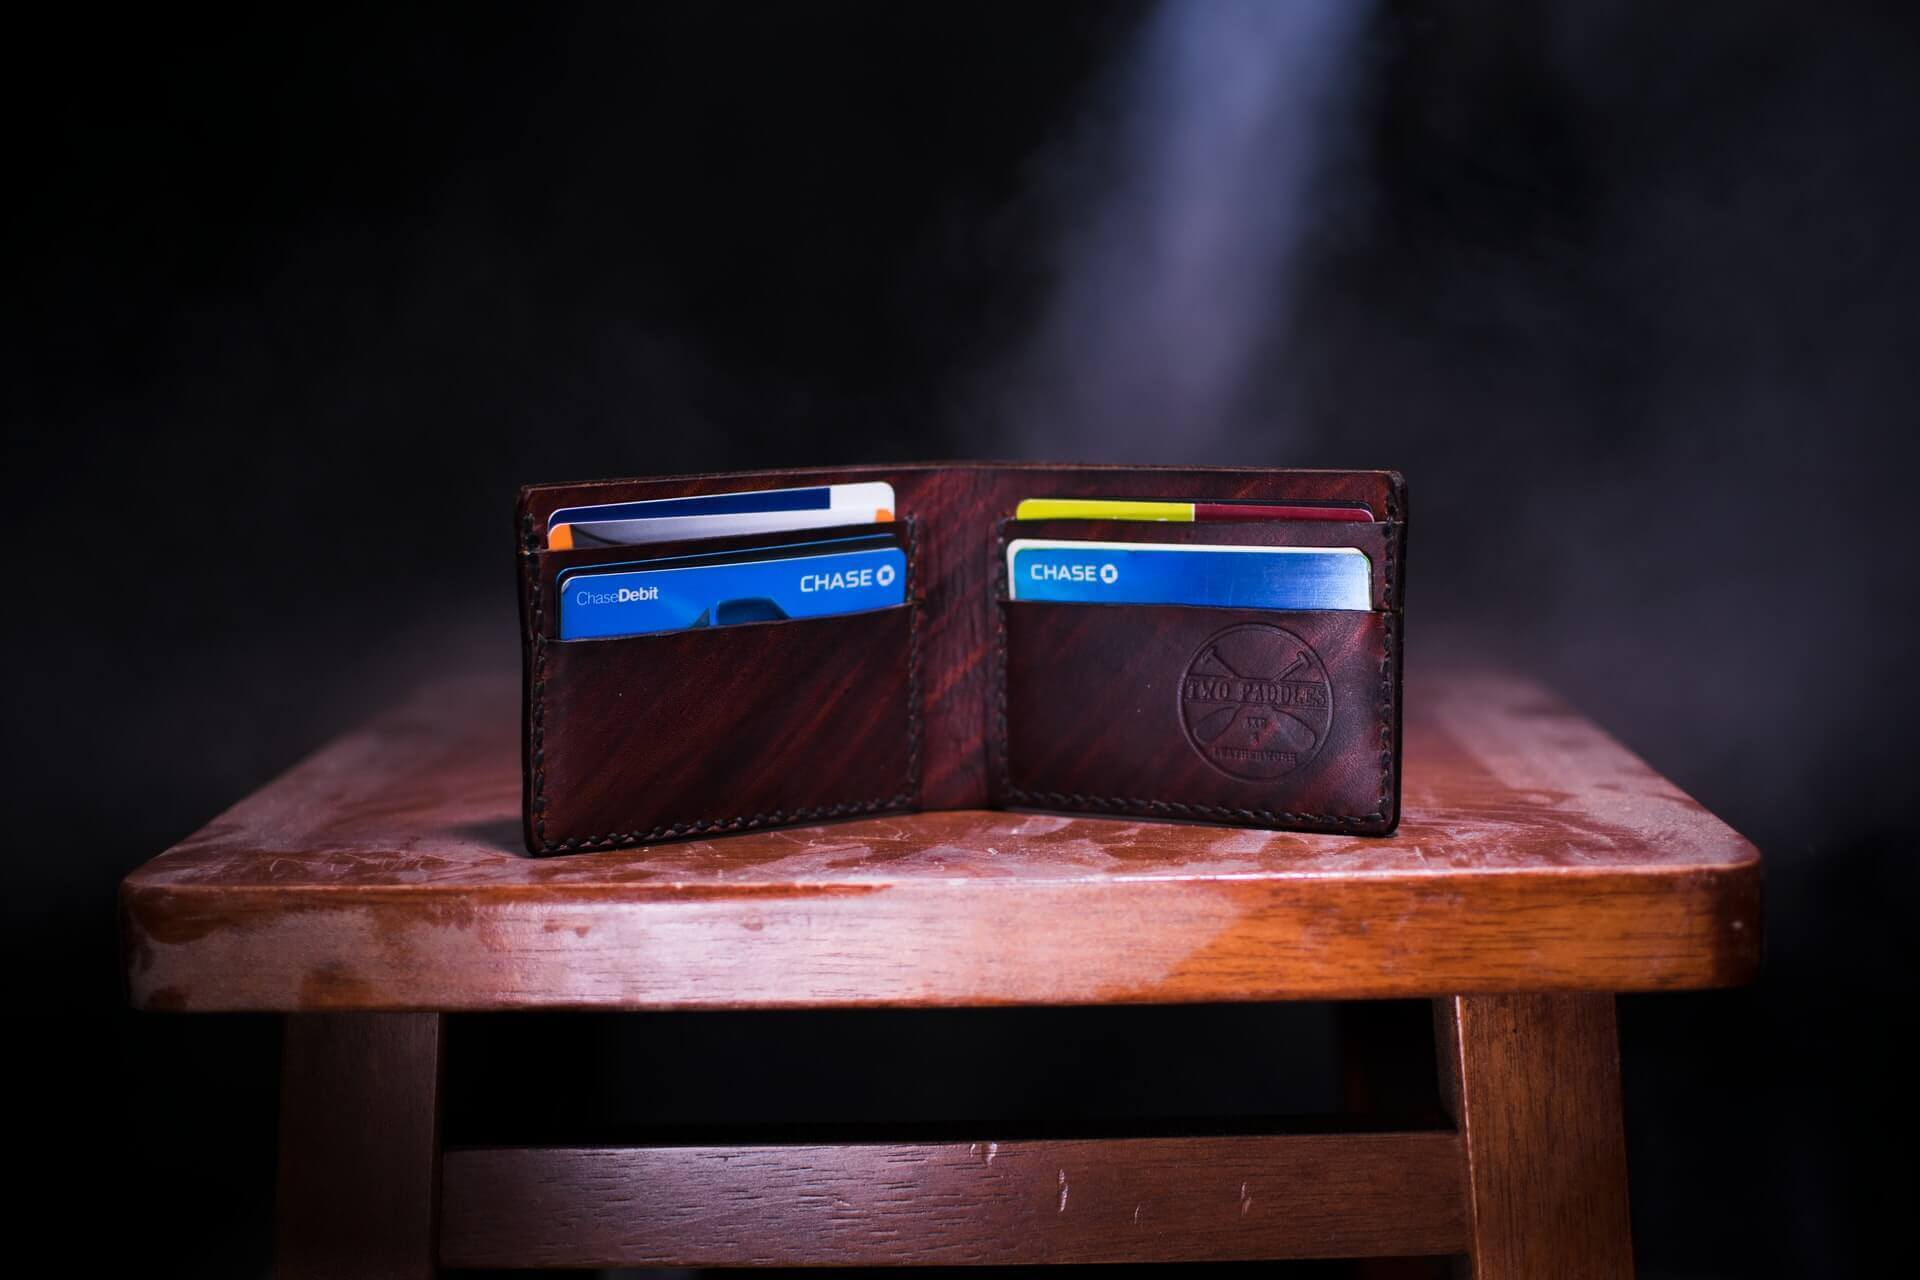 Easiest Airline Credit Cards To Get